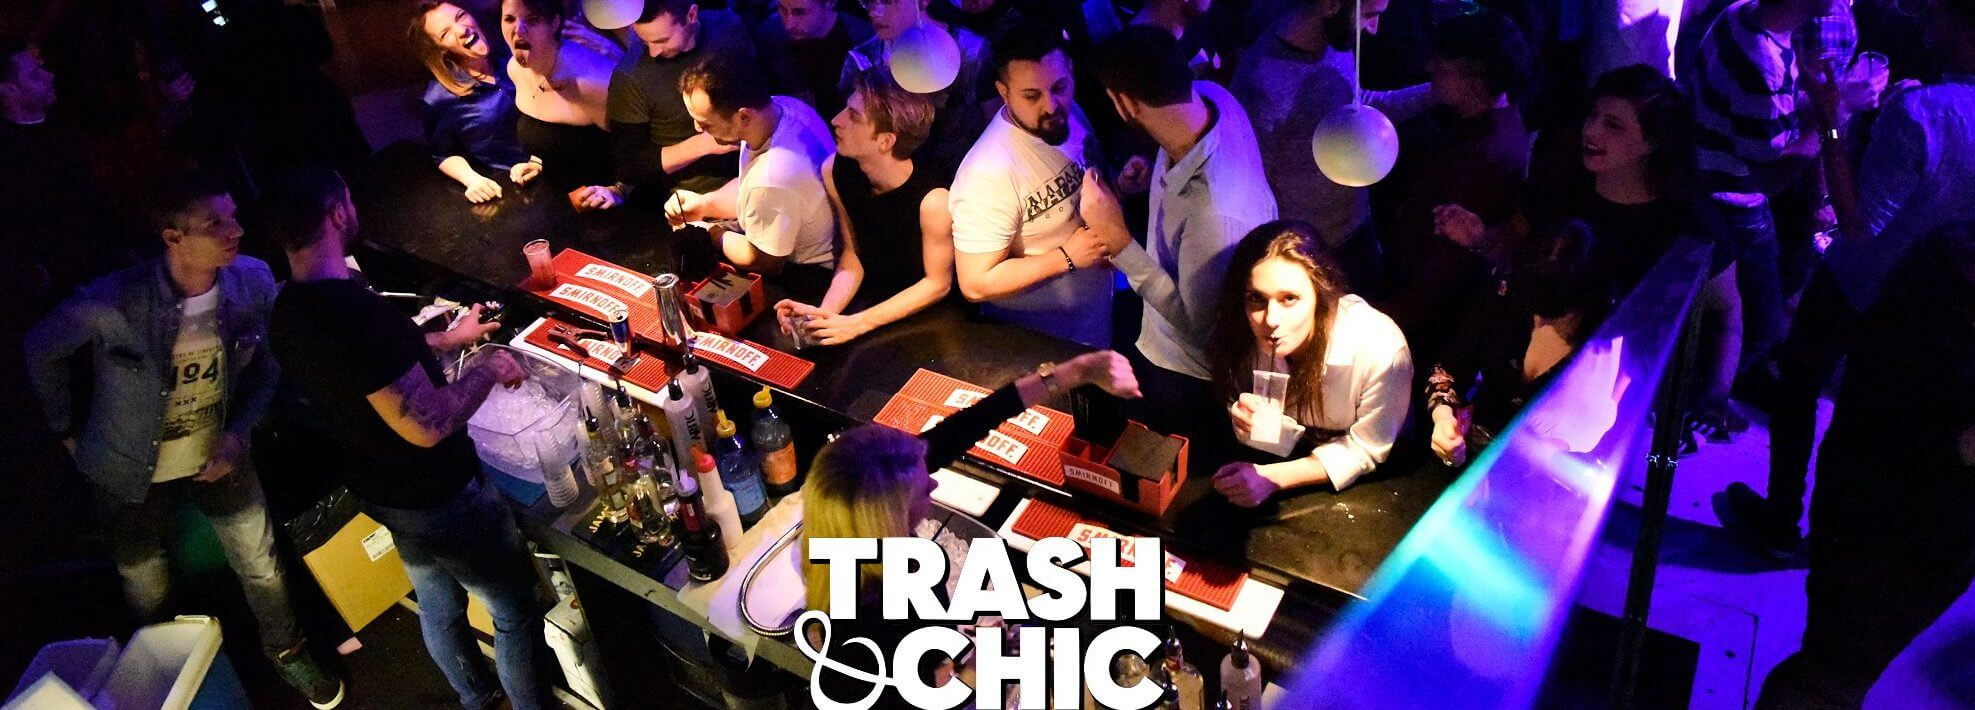 Trash & Chic gay parti Venice